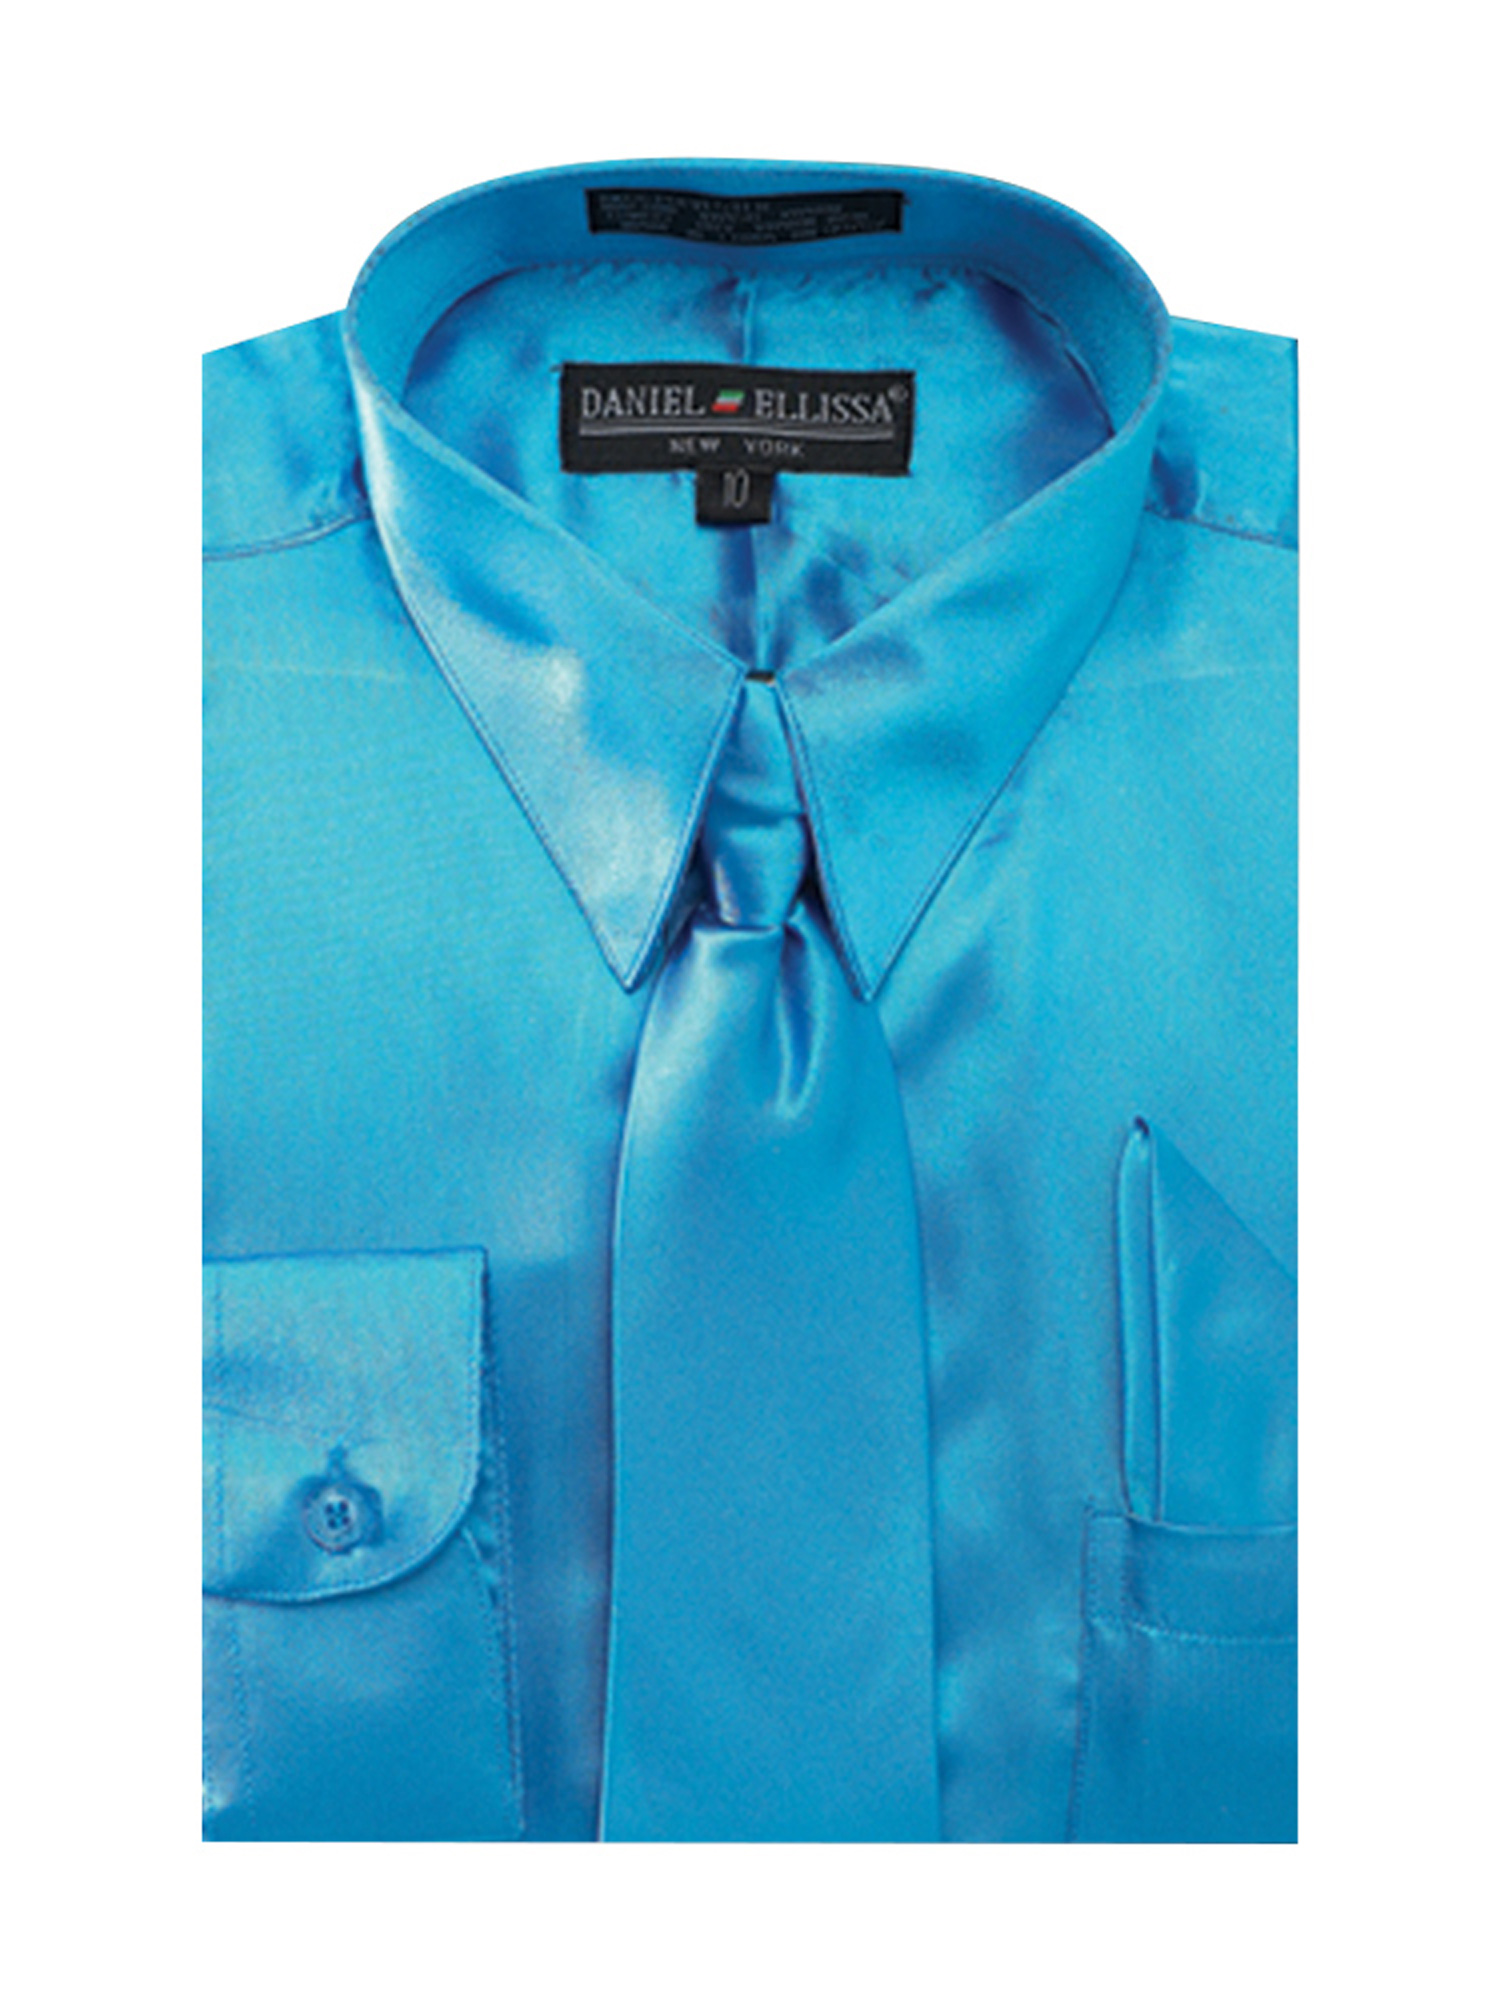 Boy's Satin Dress Shirt with Matching Tie and Hanky Set